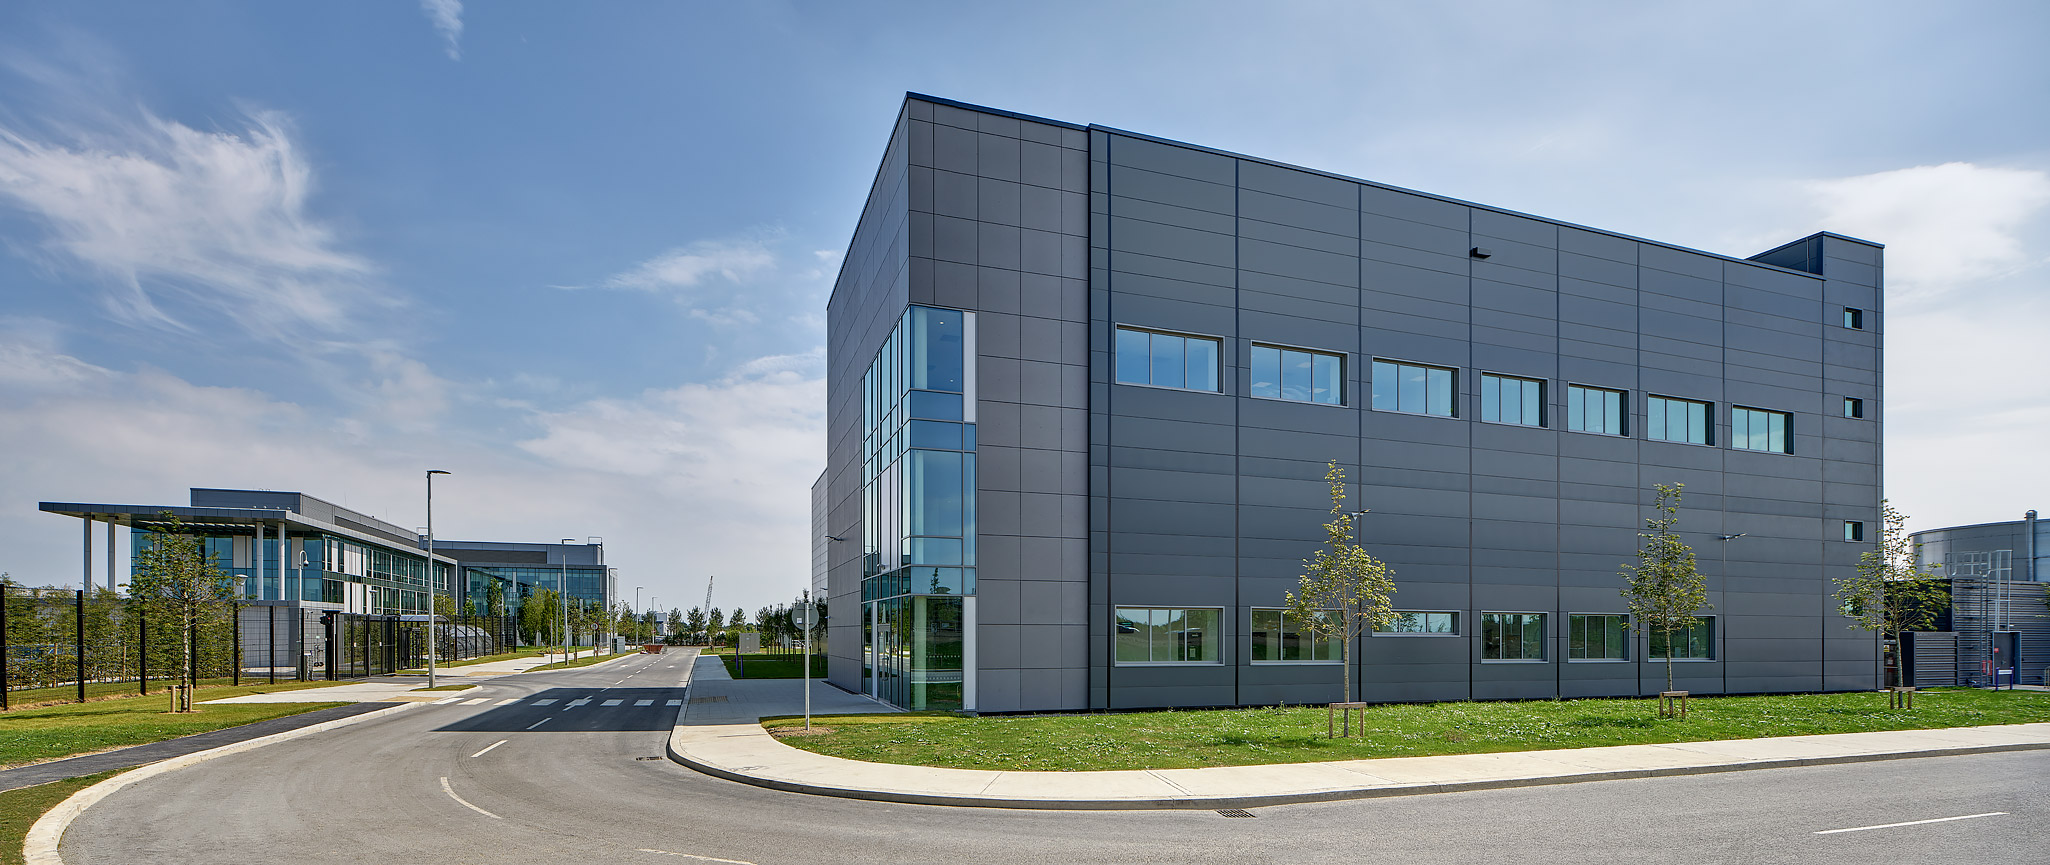 MEA CSA designers for Mallinckrodt Site Development and MAnufacturing Building